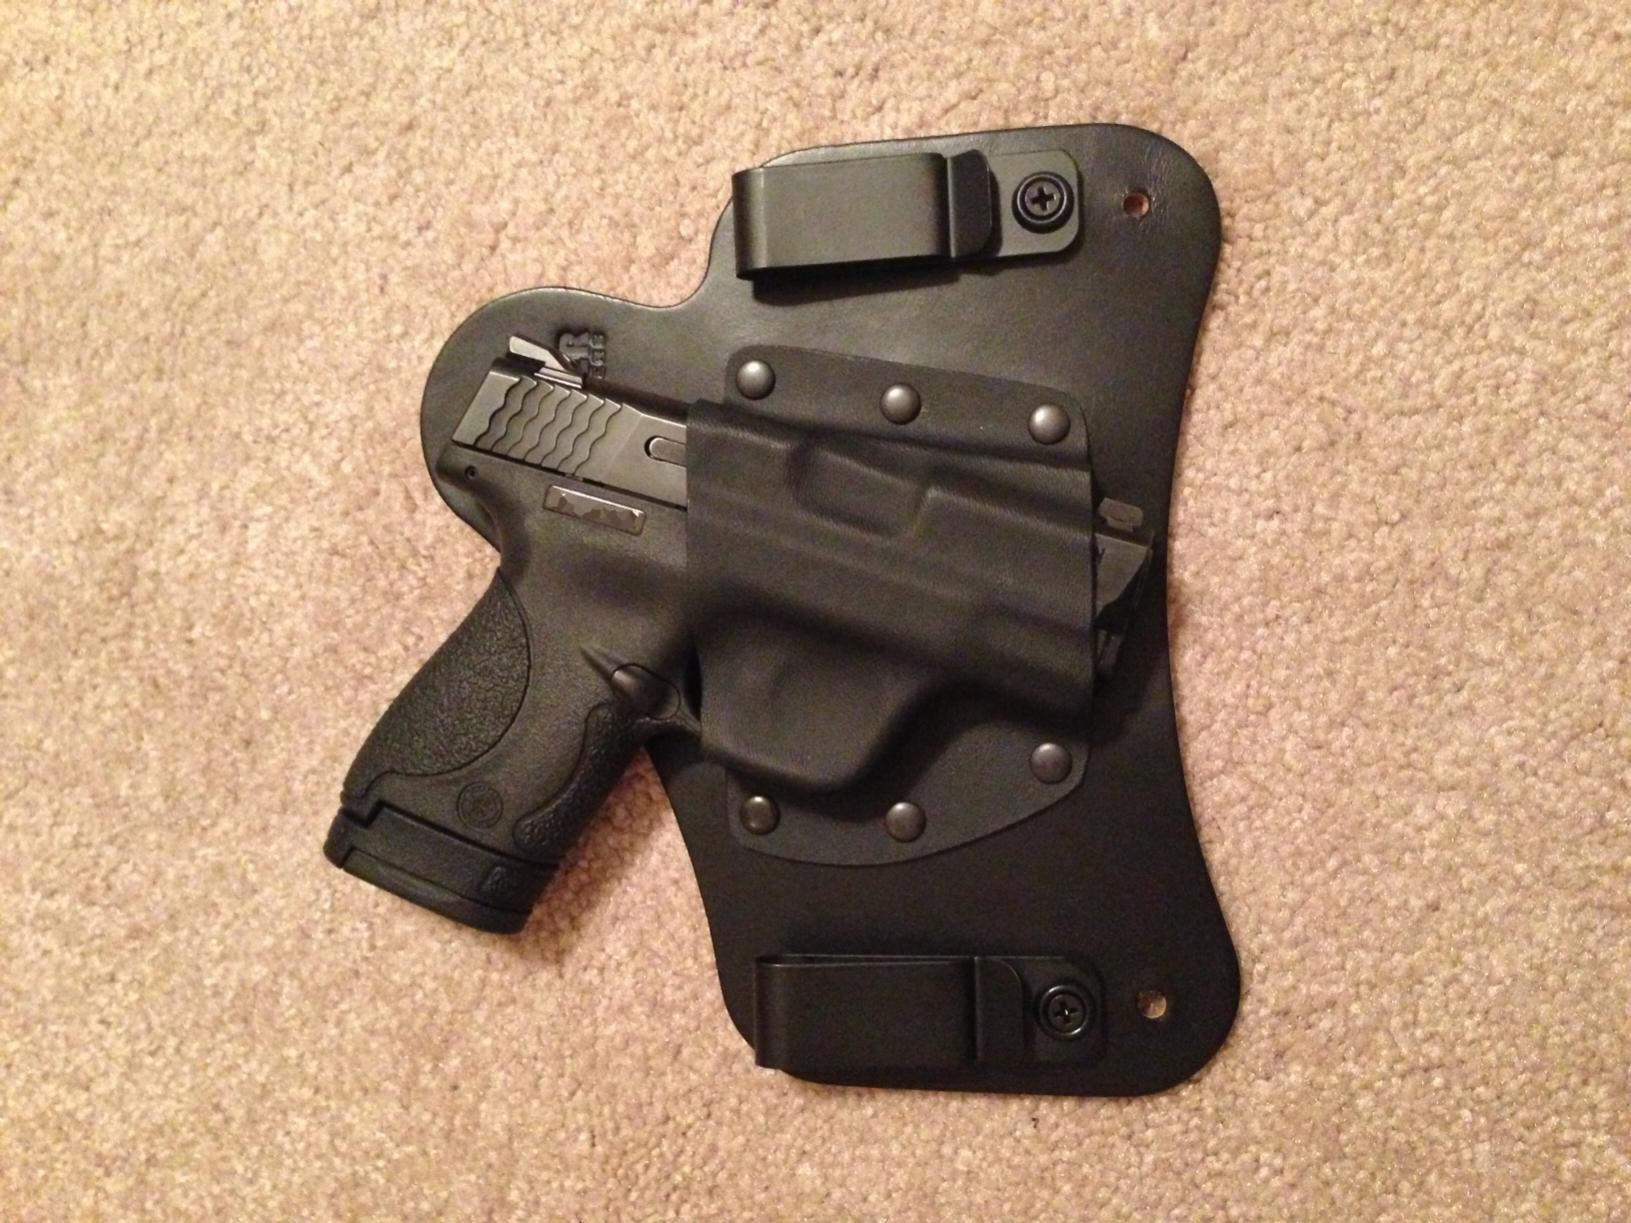 My Vedder Holsters Comforttuck review for my Shield 9mm